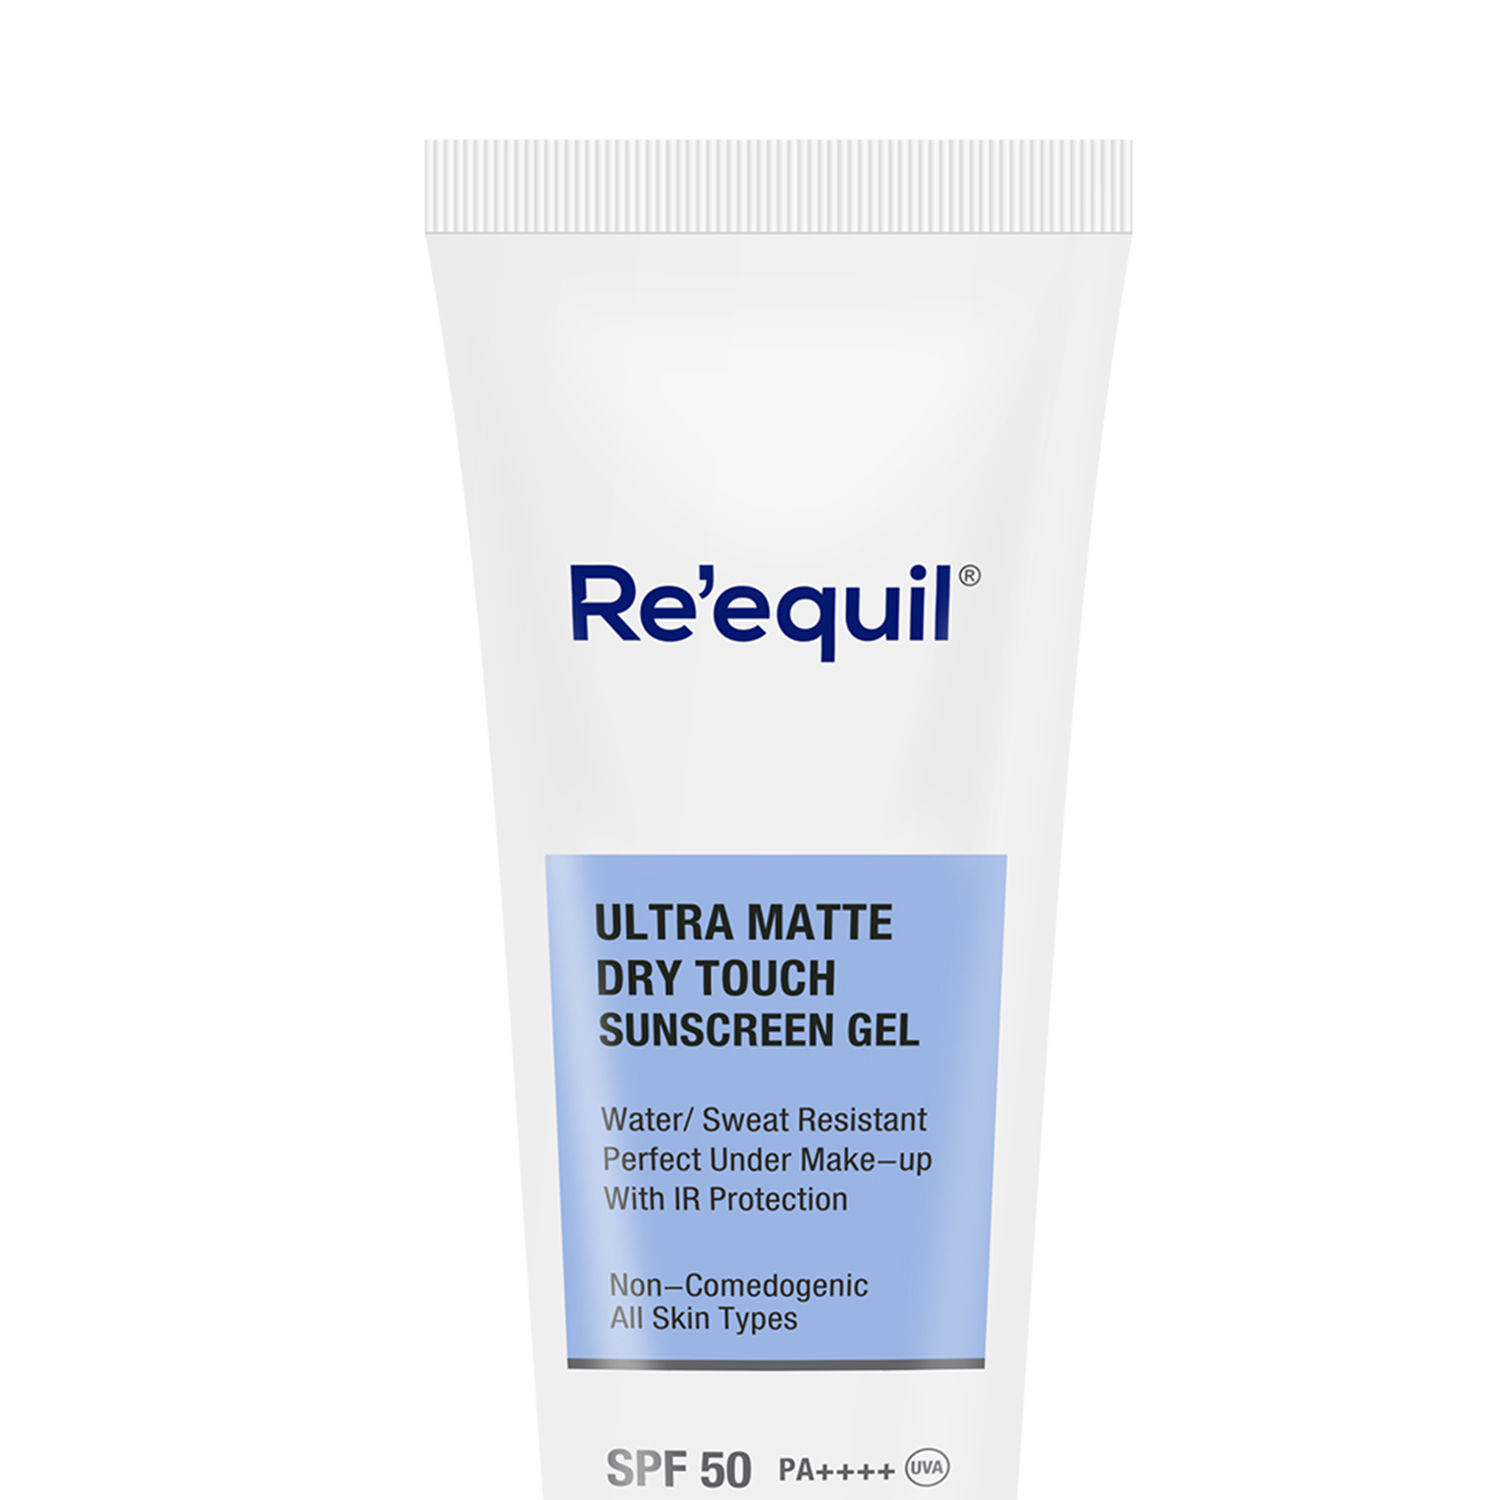 Reequil Ultra Matte Dry Touch Sunscreen Gel SPF 50 PA ++++ UVA: Buy Reequil  Ultra Matte Dry Touch Sunscreen Gel SPF 50 PA ++++ UVA Online at Best Price  in India | Nykaa